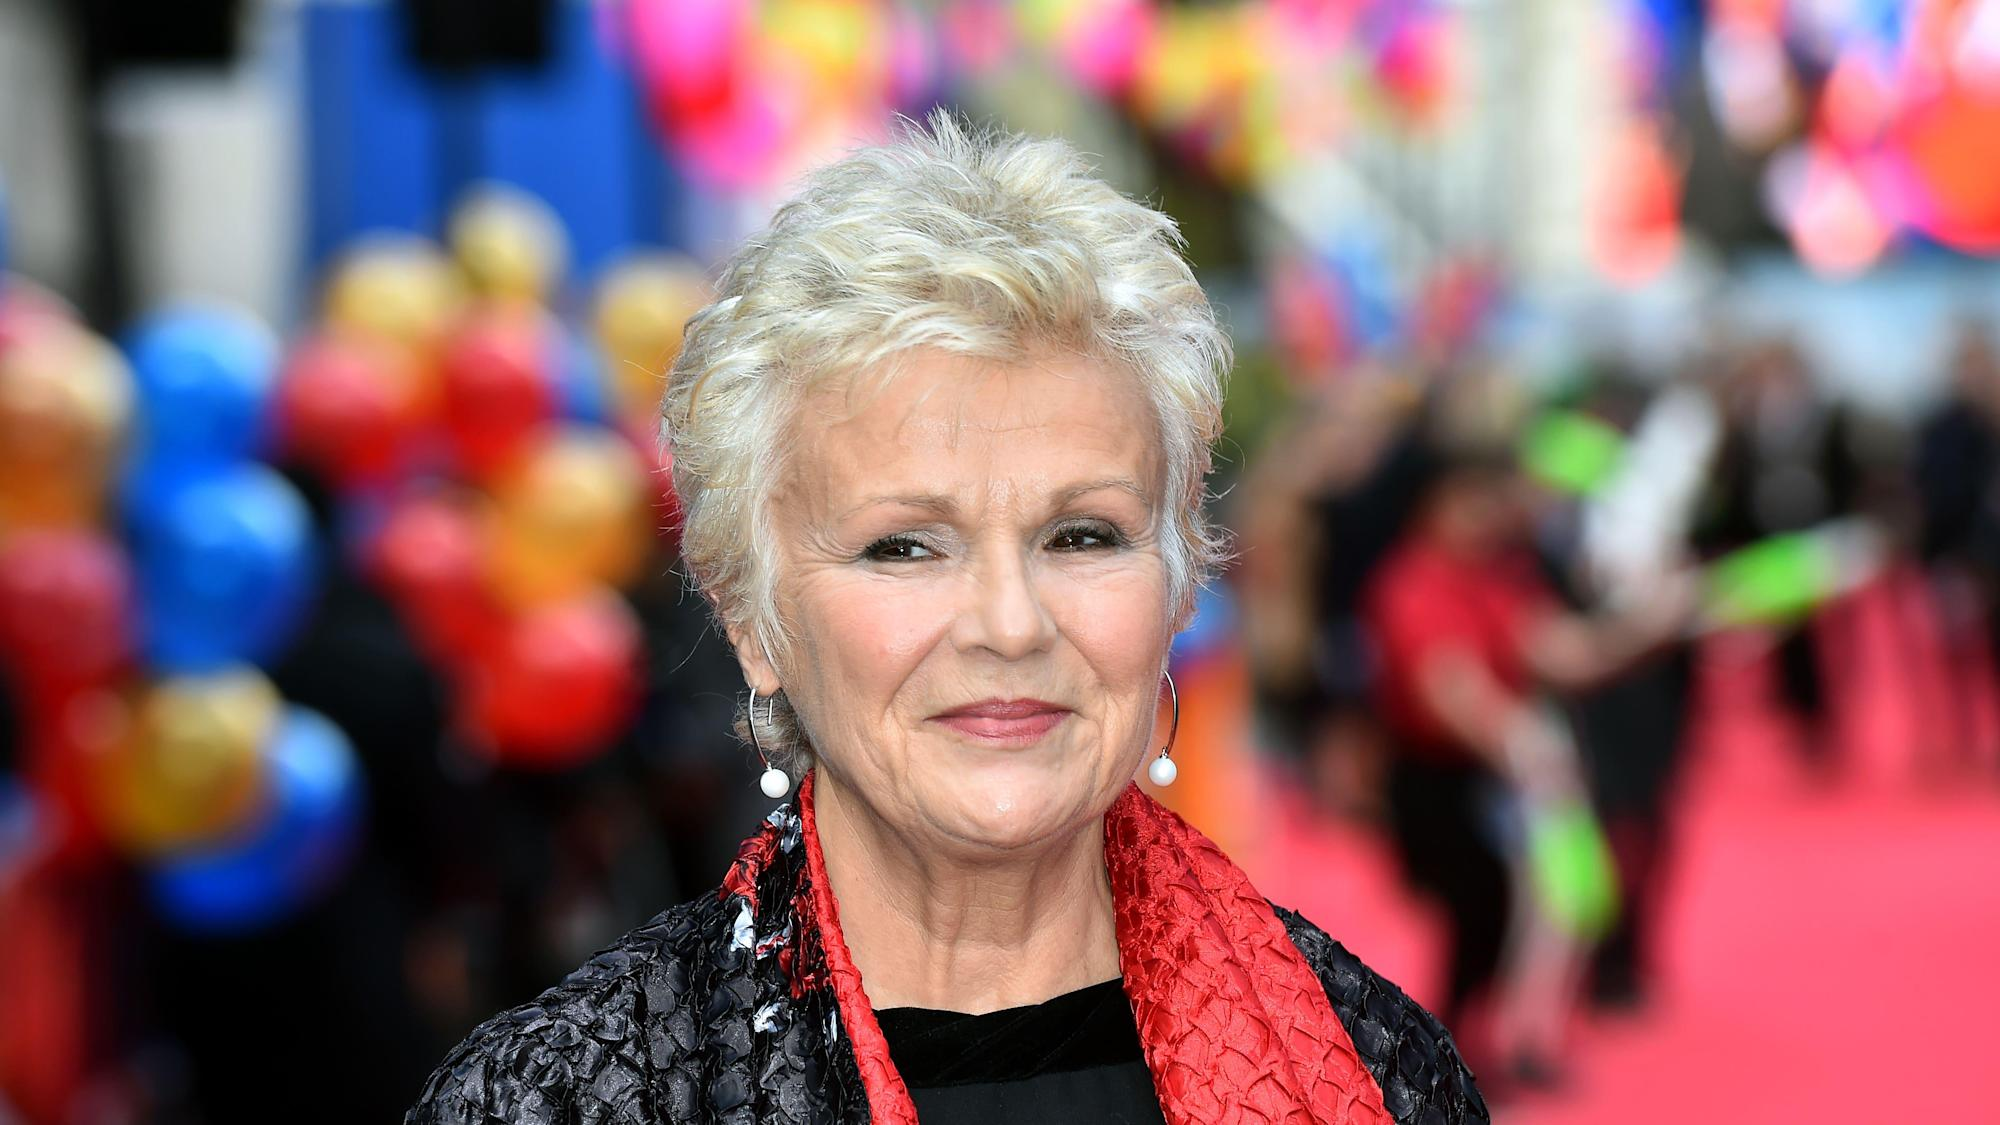 Connect with nature to improve your mental health, says Dame Julie Walters